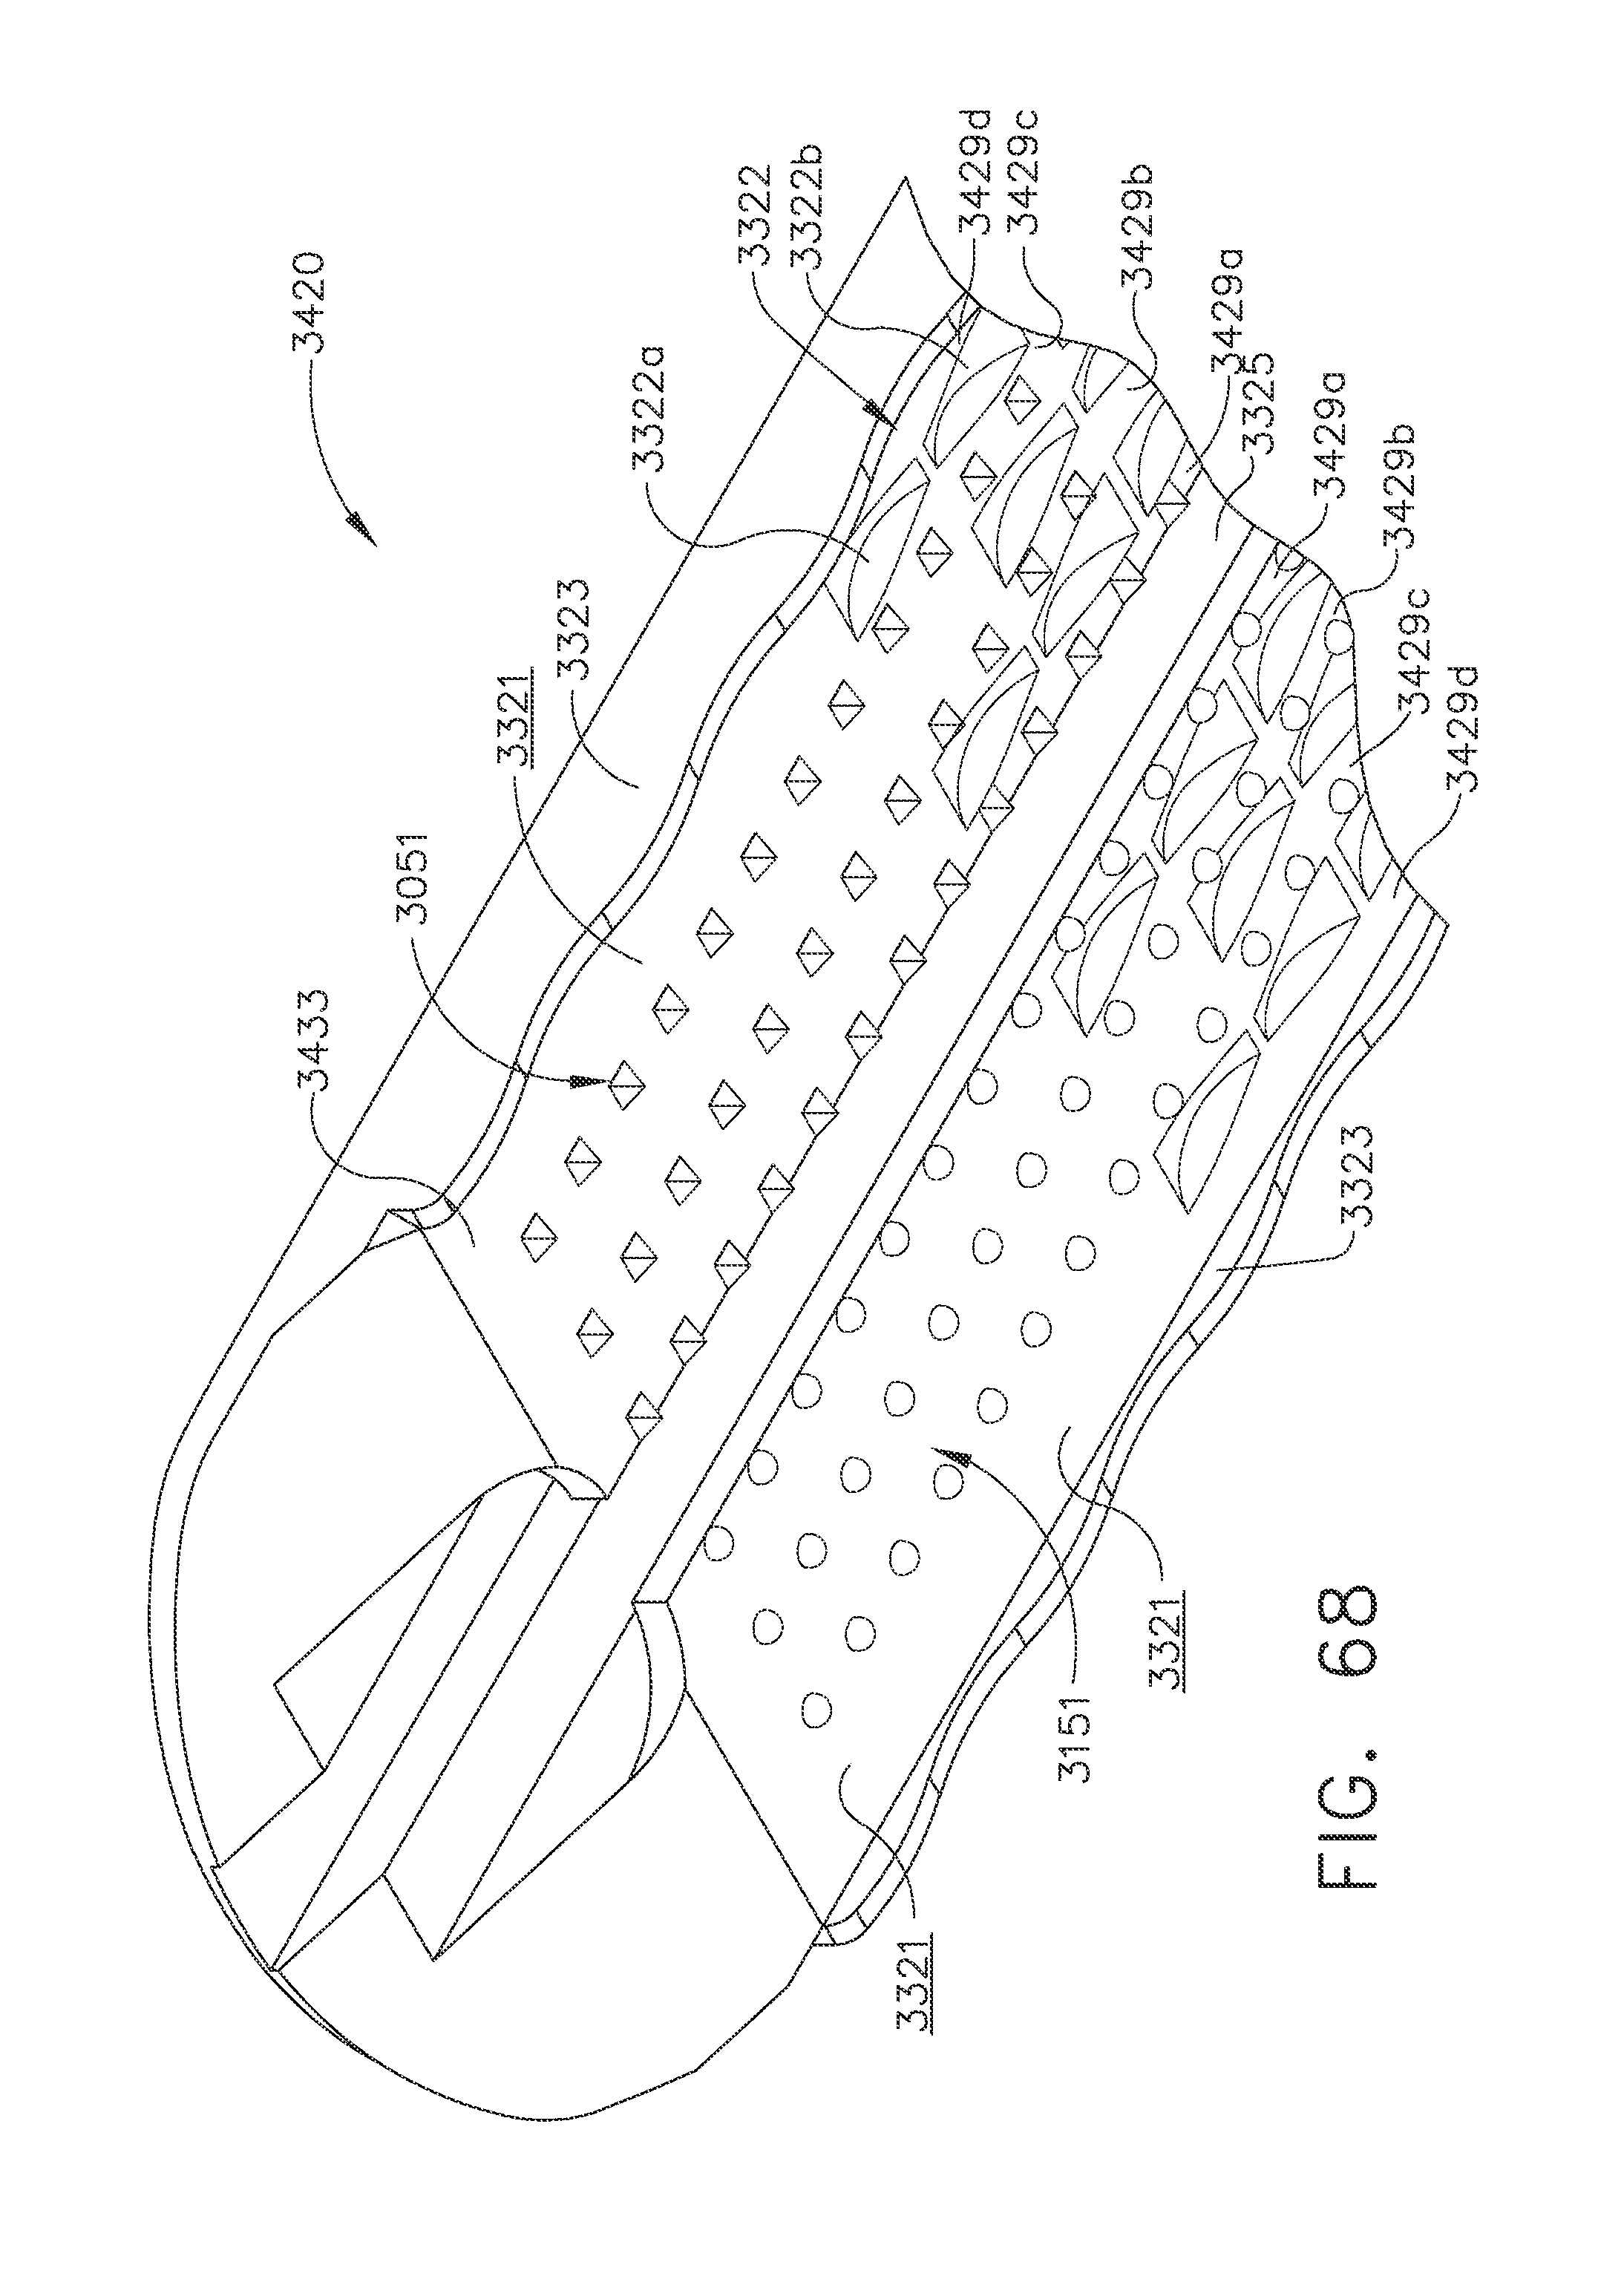 Us20150297234a1 end effector prising an anvil including projections extending therefrom patents